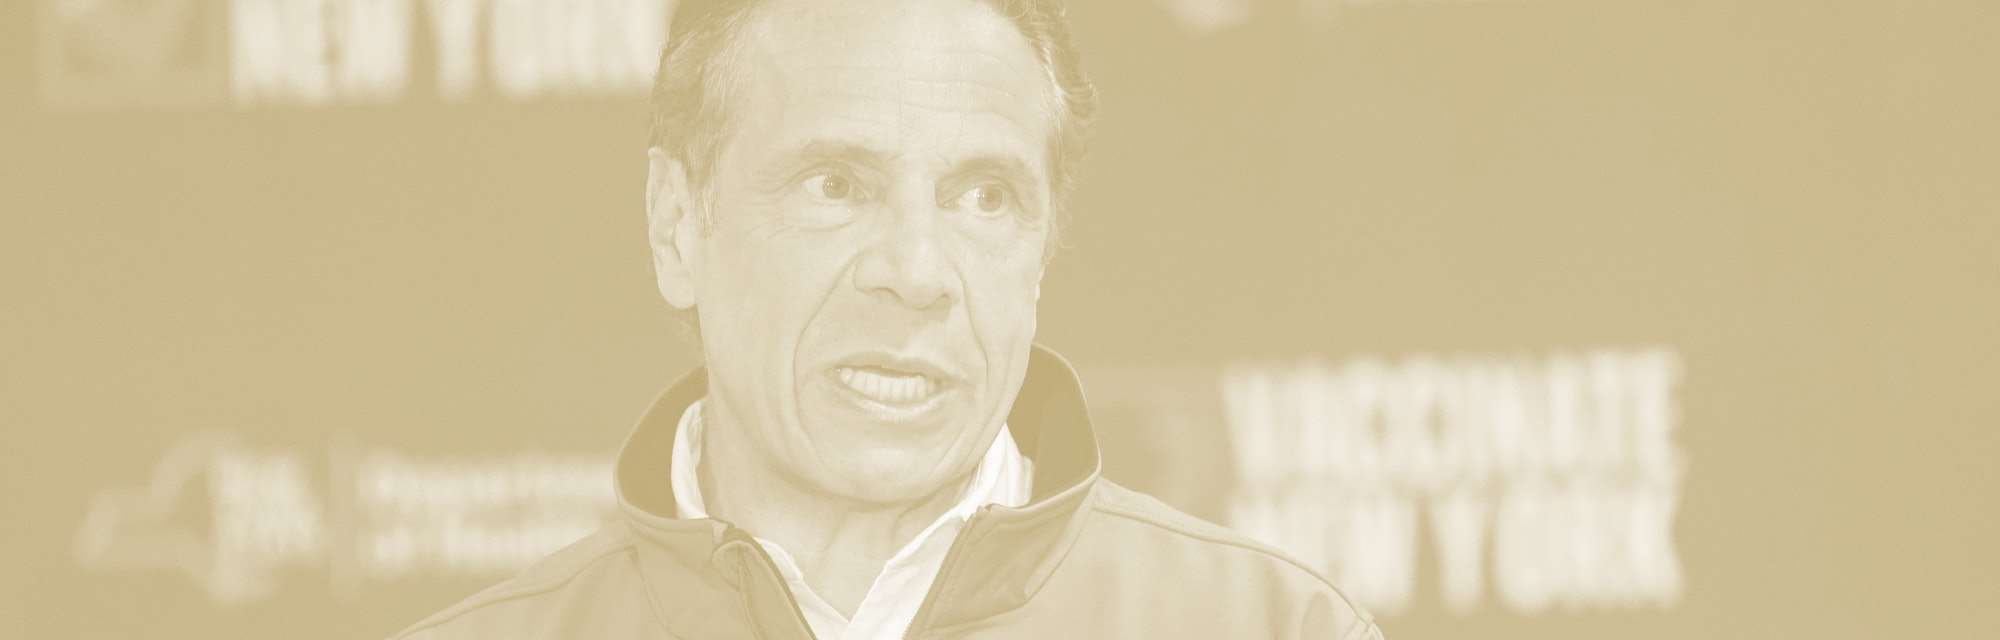 ELMONT, NY - APRIL 14: Gov. Andrew Cuomo speaks during a news conference, at a pop up COVID-19 vaccination sight on April 14, 2021 at Belmont Park in Elmont , New York. Cuomo announced Northwell Health will assist getting many of the workers at the USB Arena vaccinated at the Belmont Park pop up vaccination site.  (Photo by Mary Altaffer-Pool/Getty Images)